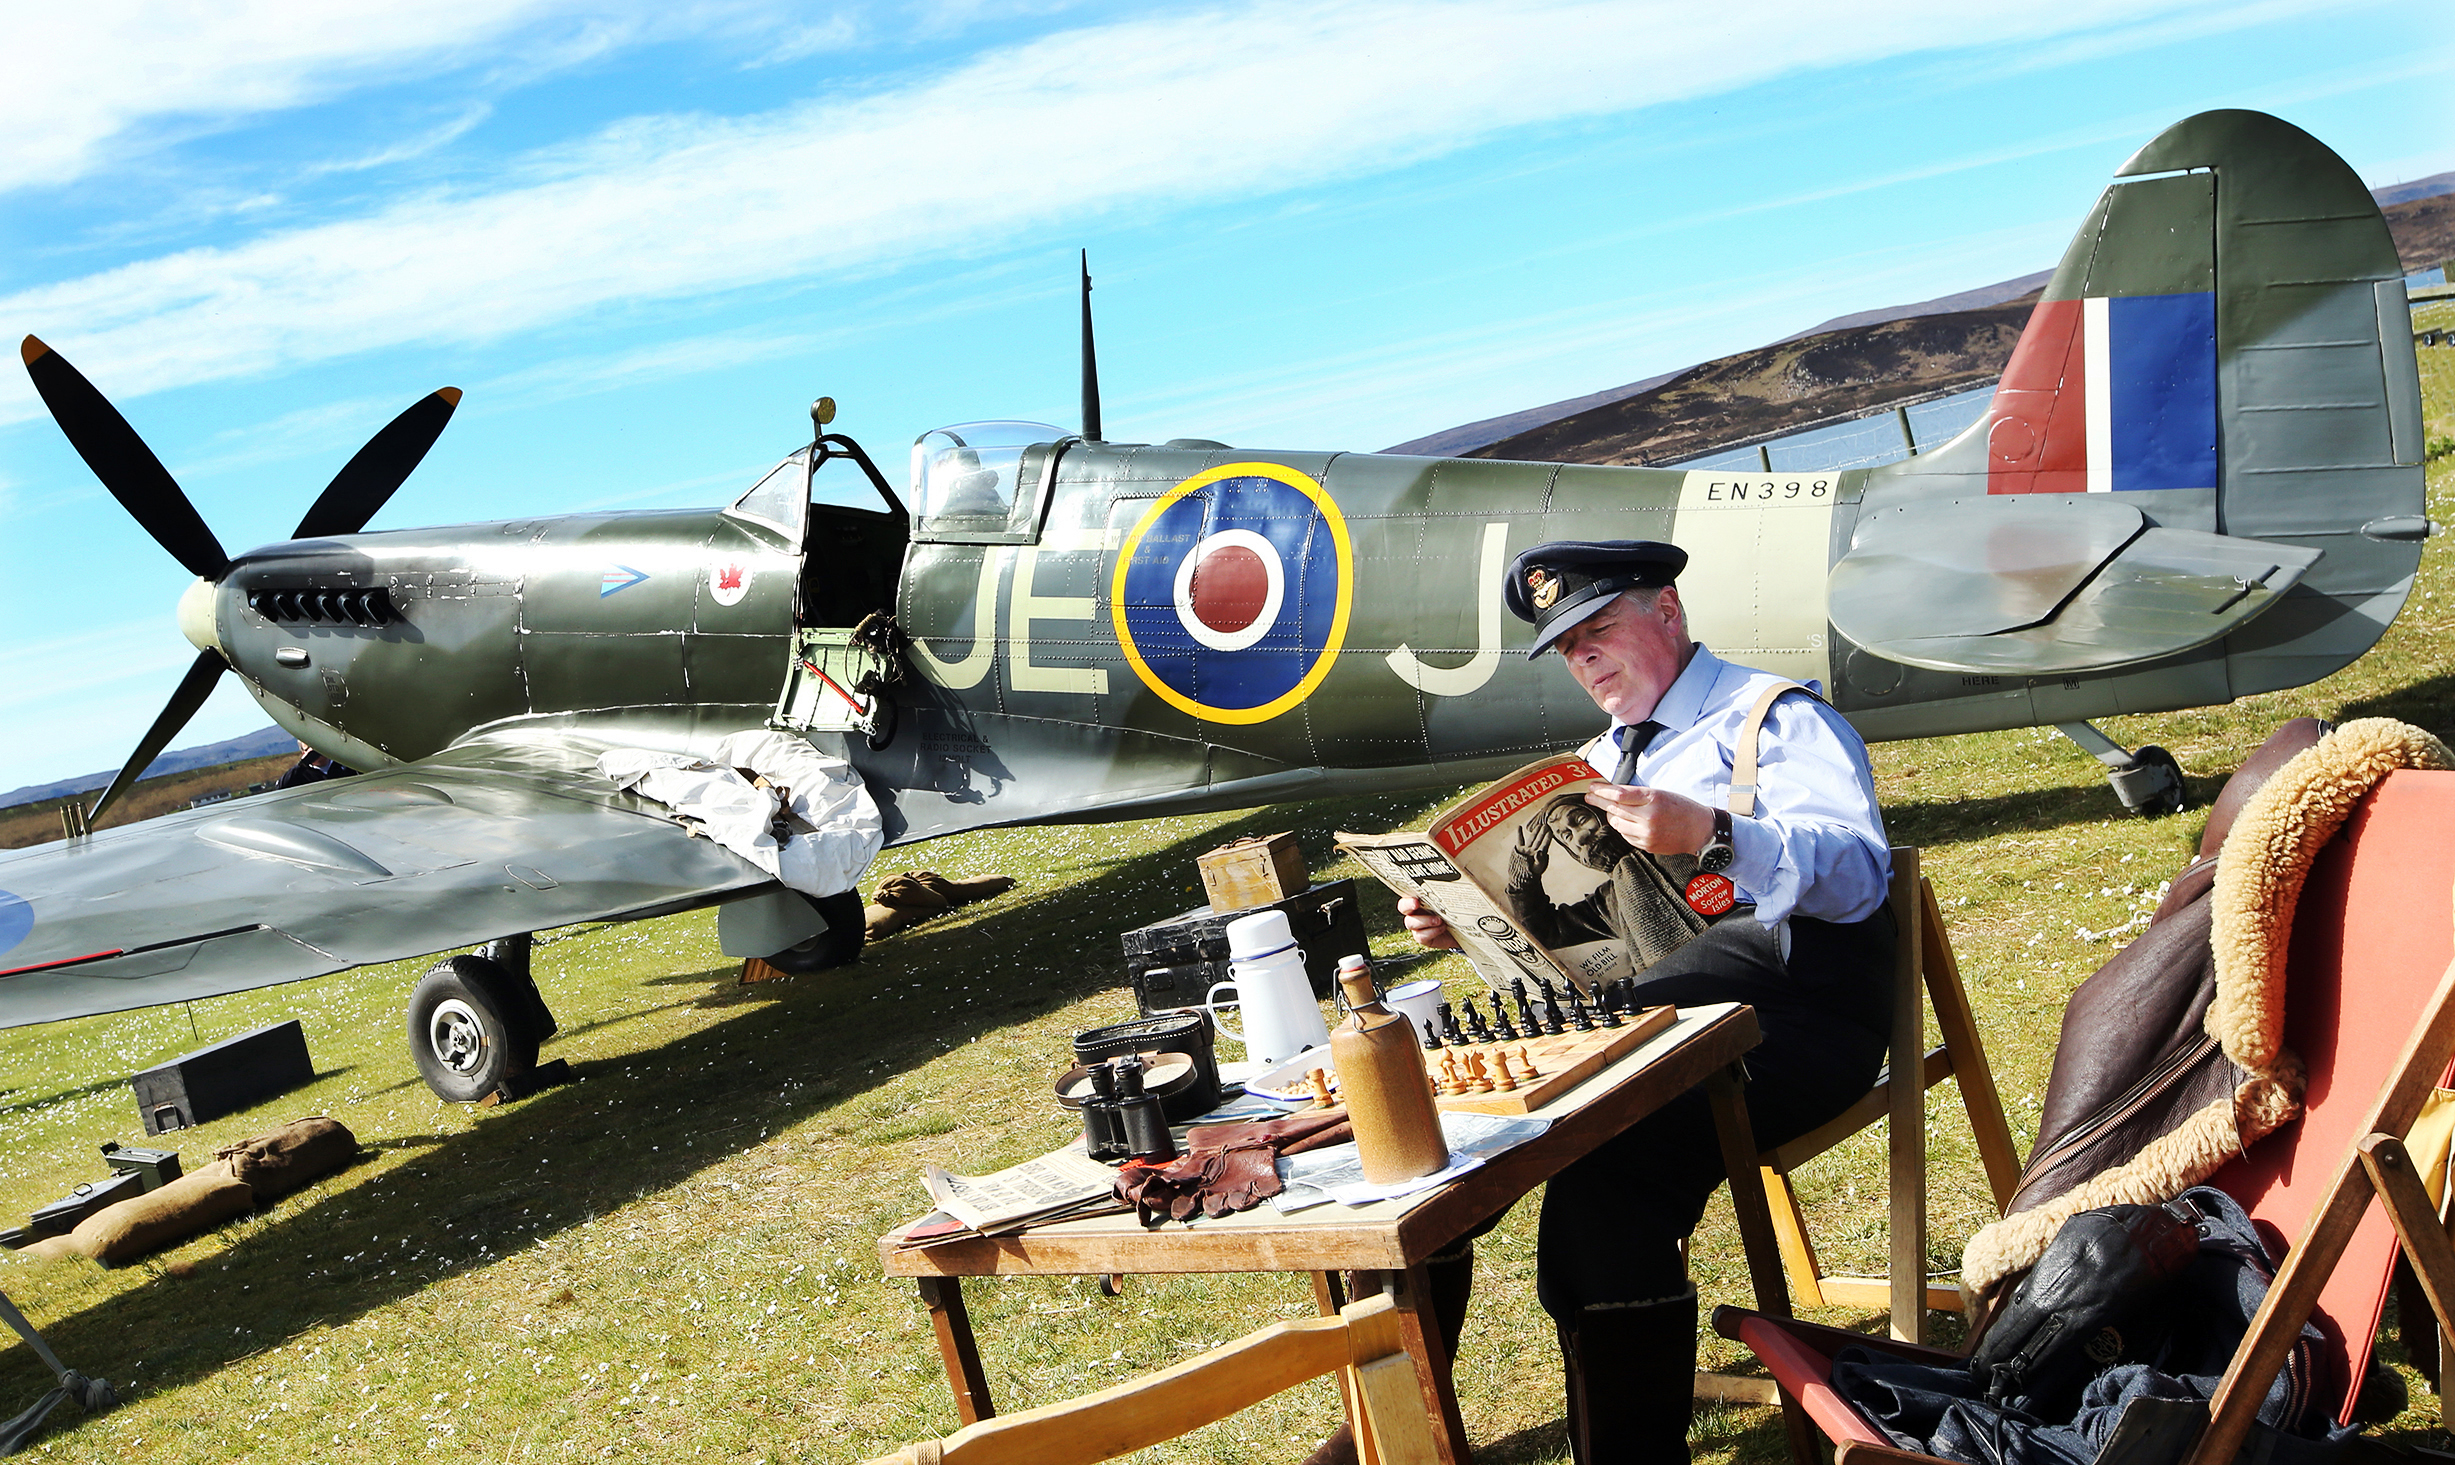 A replica Spitfire on display at the Battle of Britain camp in Aultbea, with pilot Mark Anthony Craig.